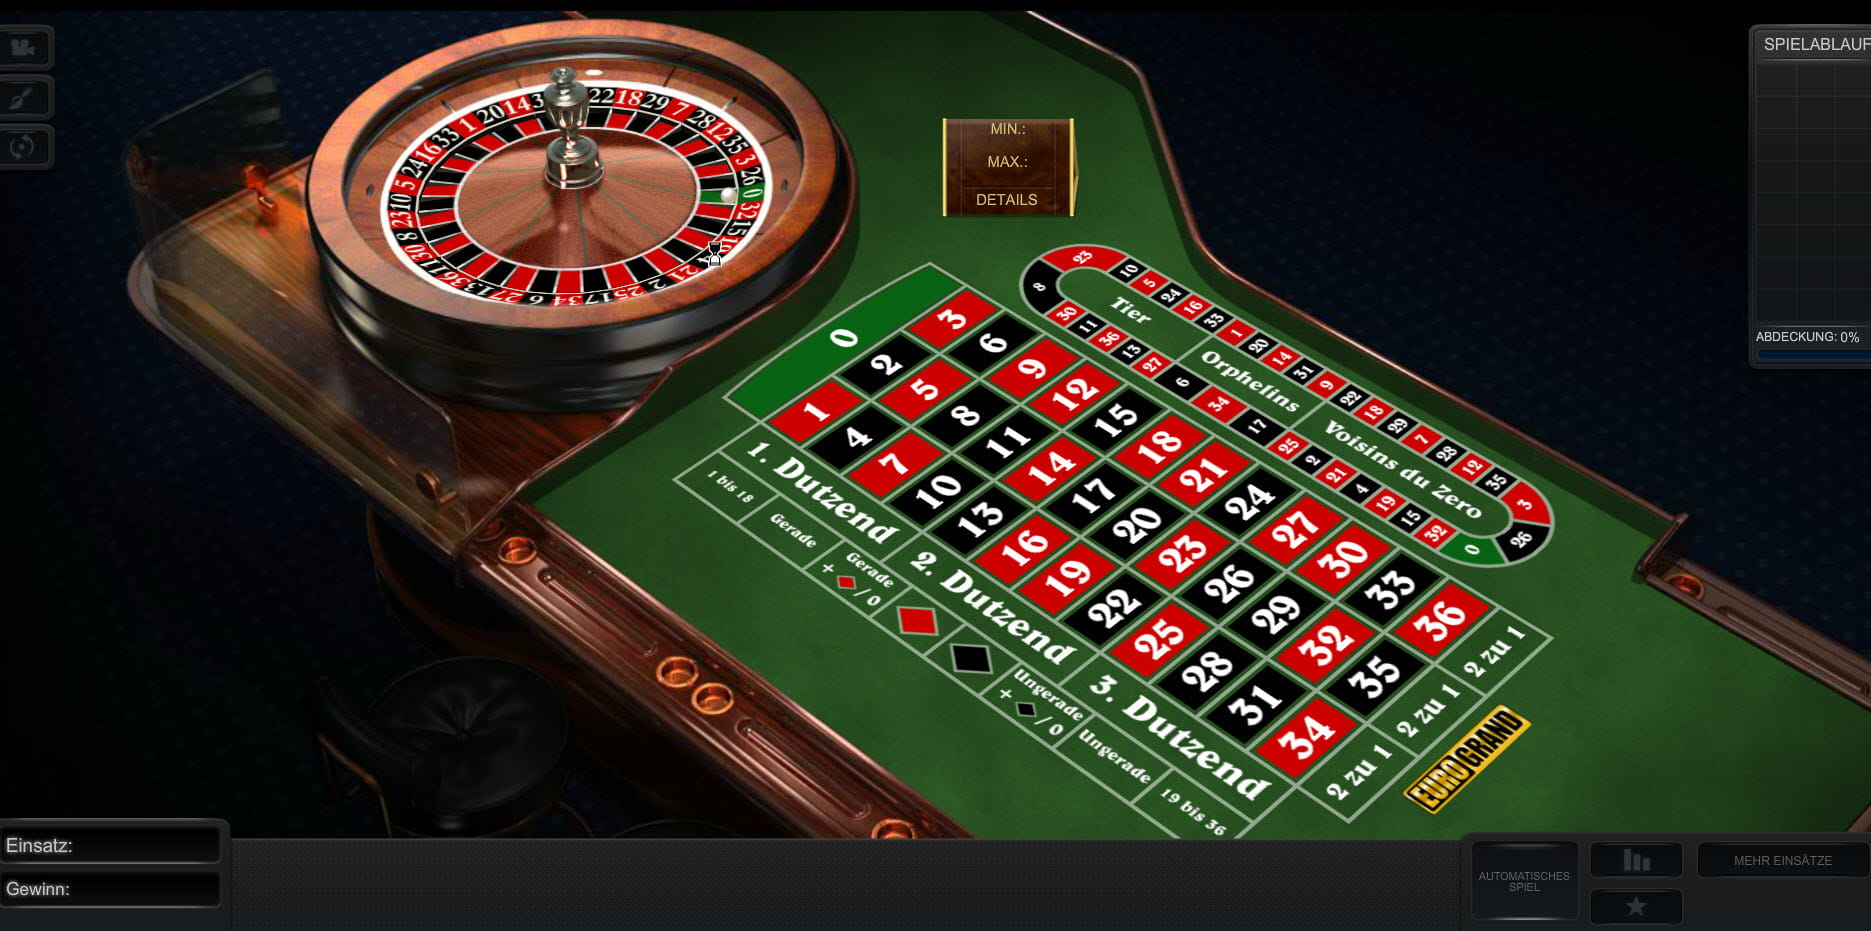 william hill online casino darling bedeutung